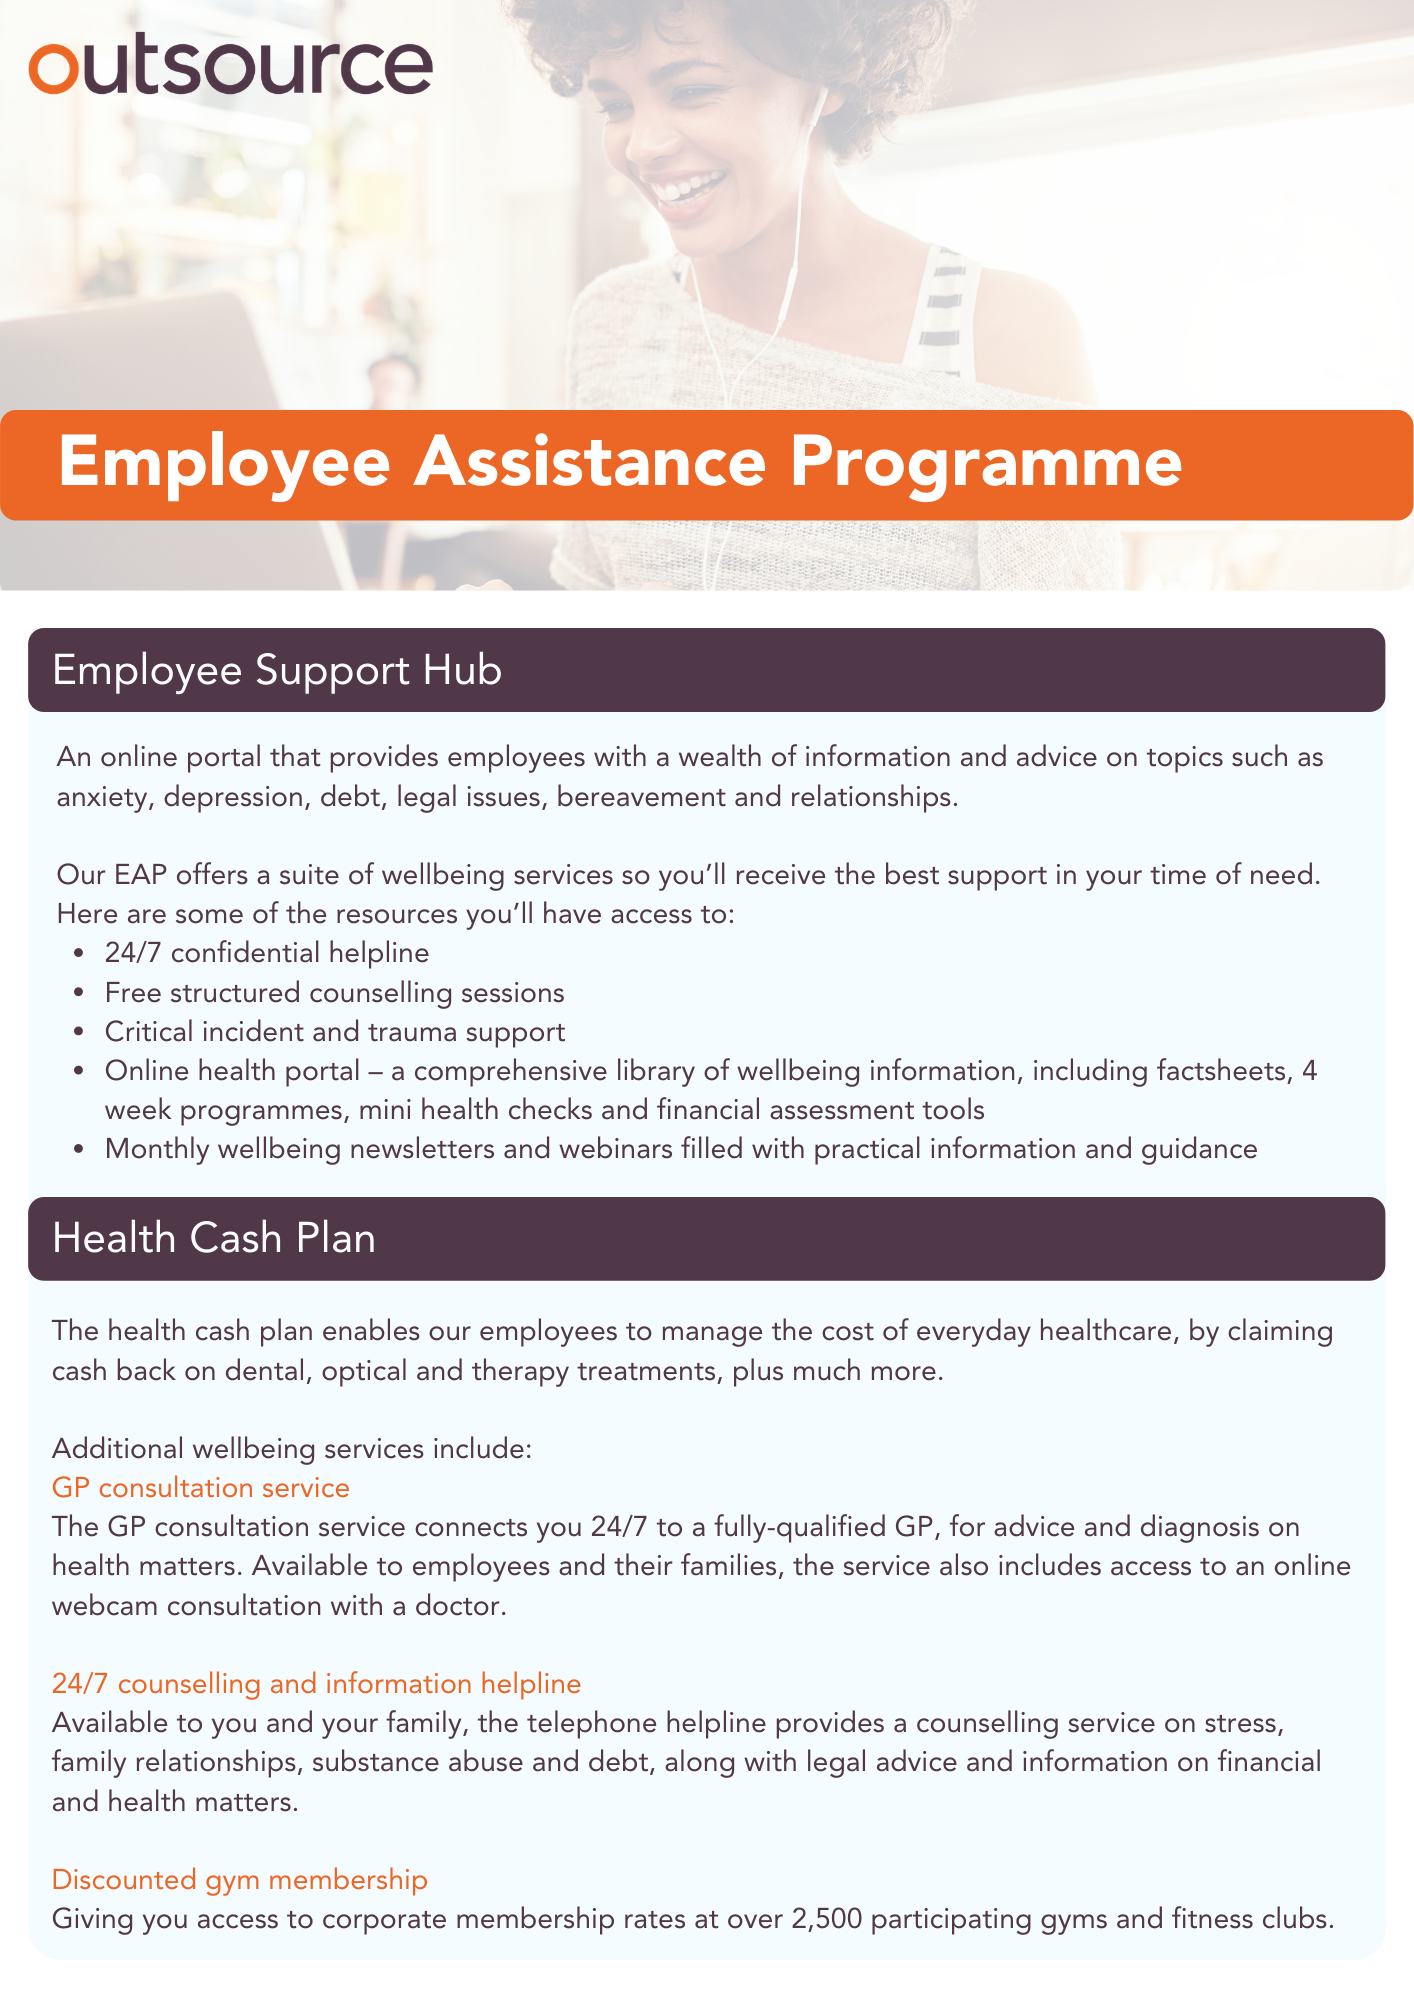 Outsource UK Employee Assistance Programme